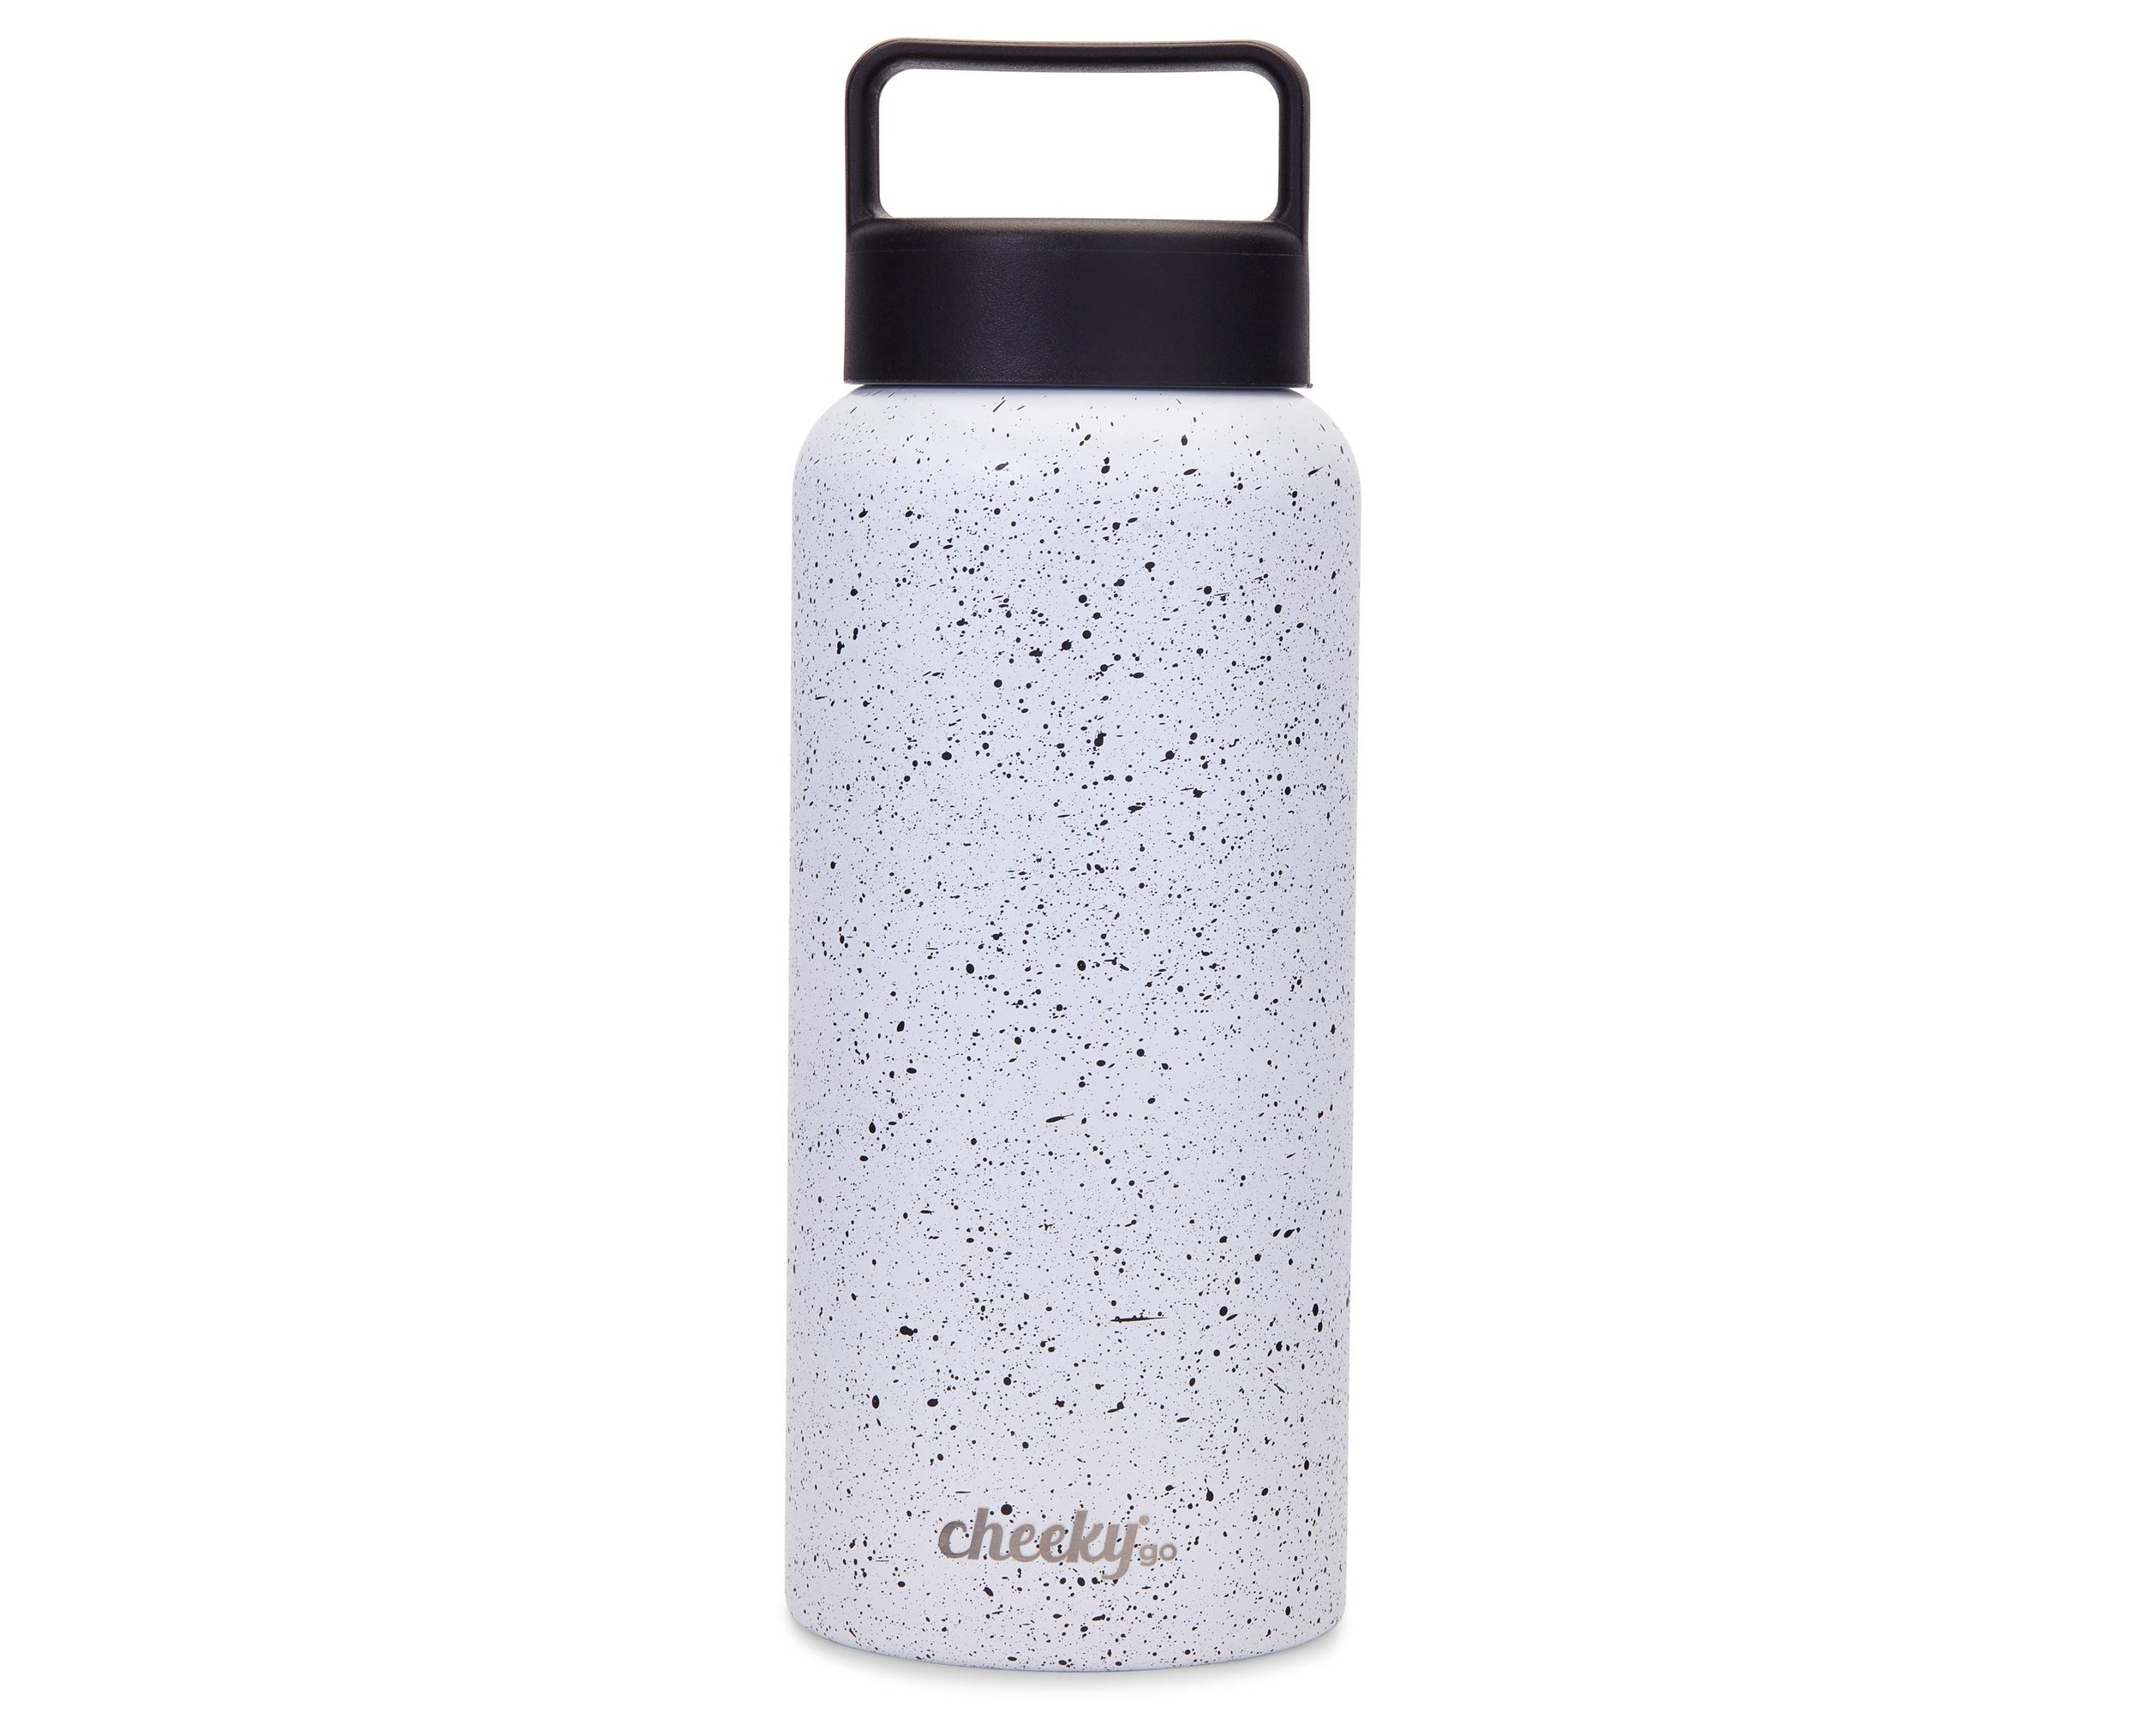 INSULATED WATER BOTTLE... - because just about everyone could stand to be more hydrated